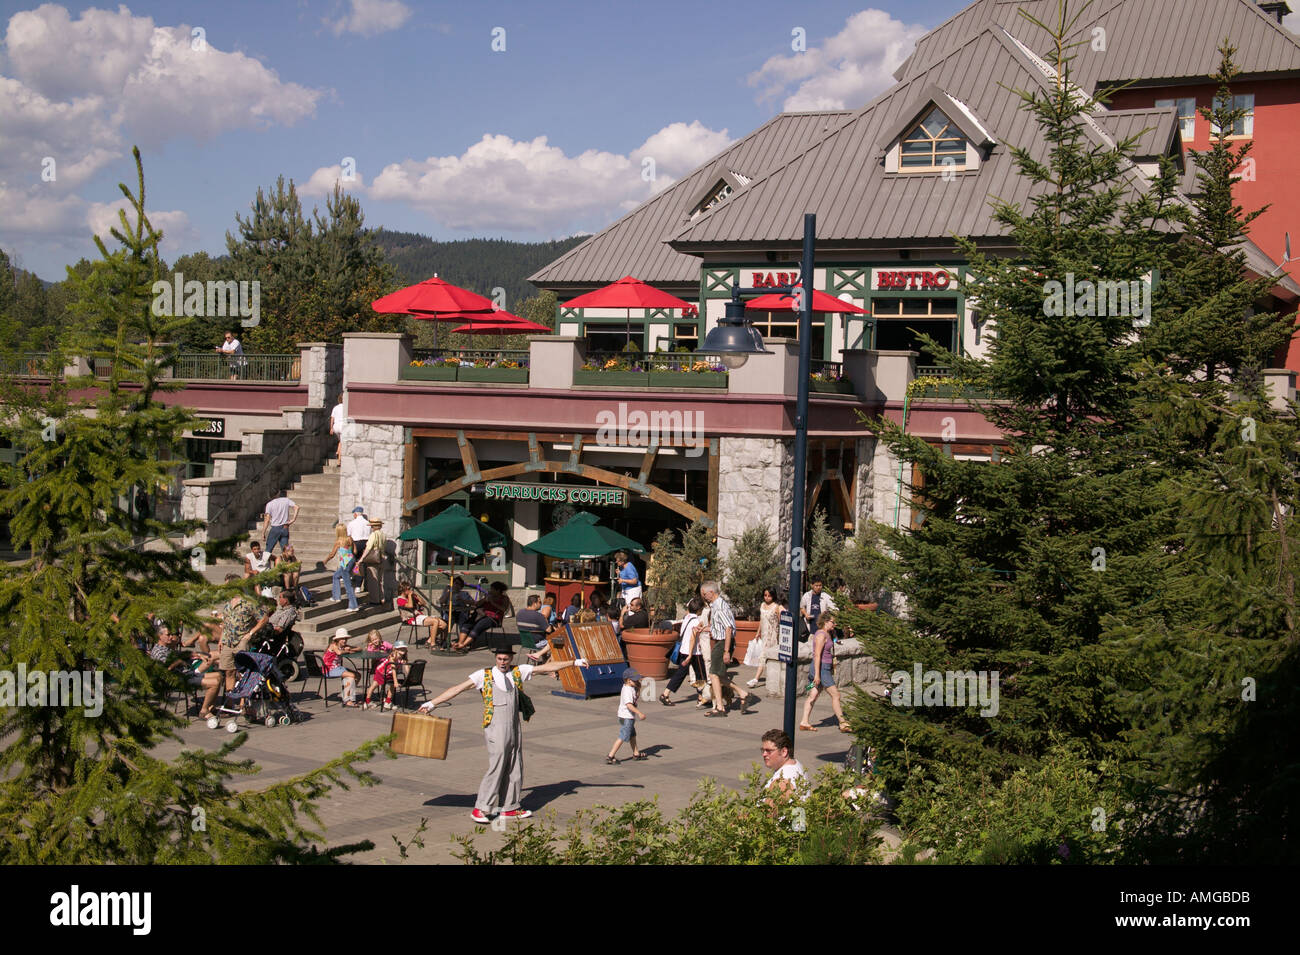 Mime performs in plaza near Starbucks Coffee at Whistler Village Whistler British Columbia Canada - Stock Image